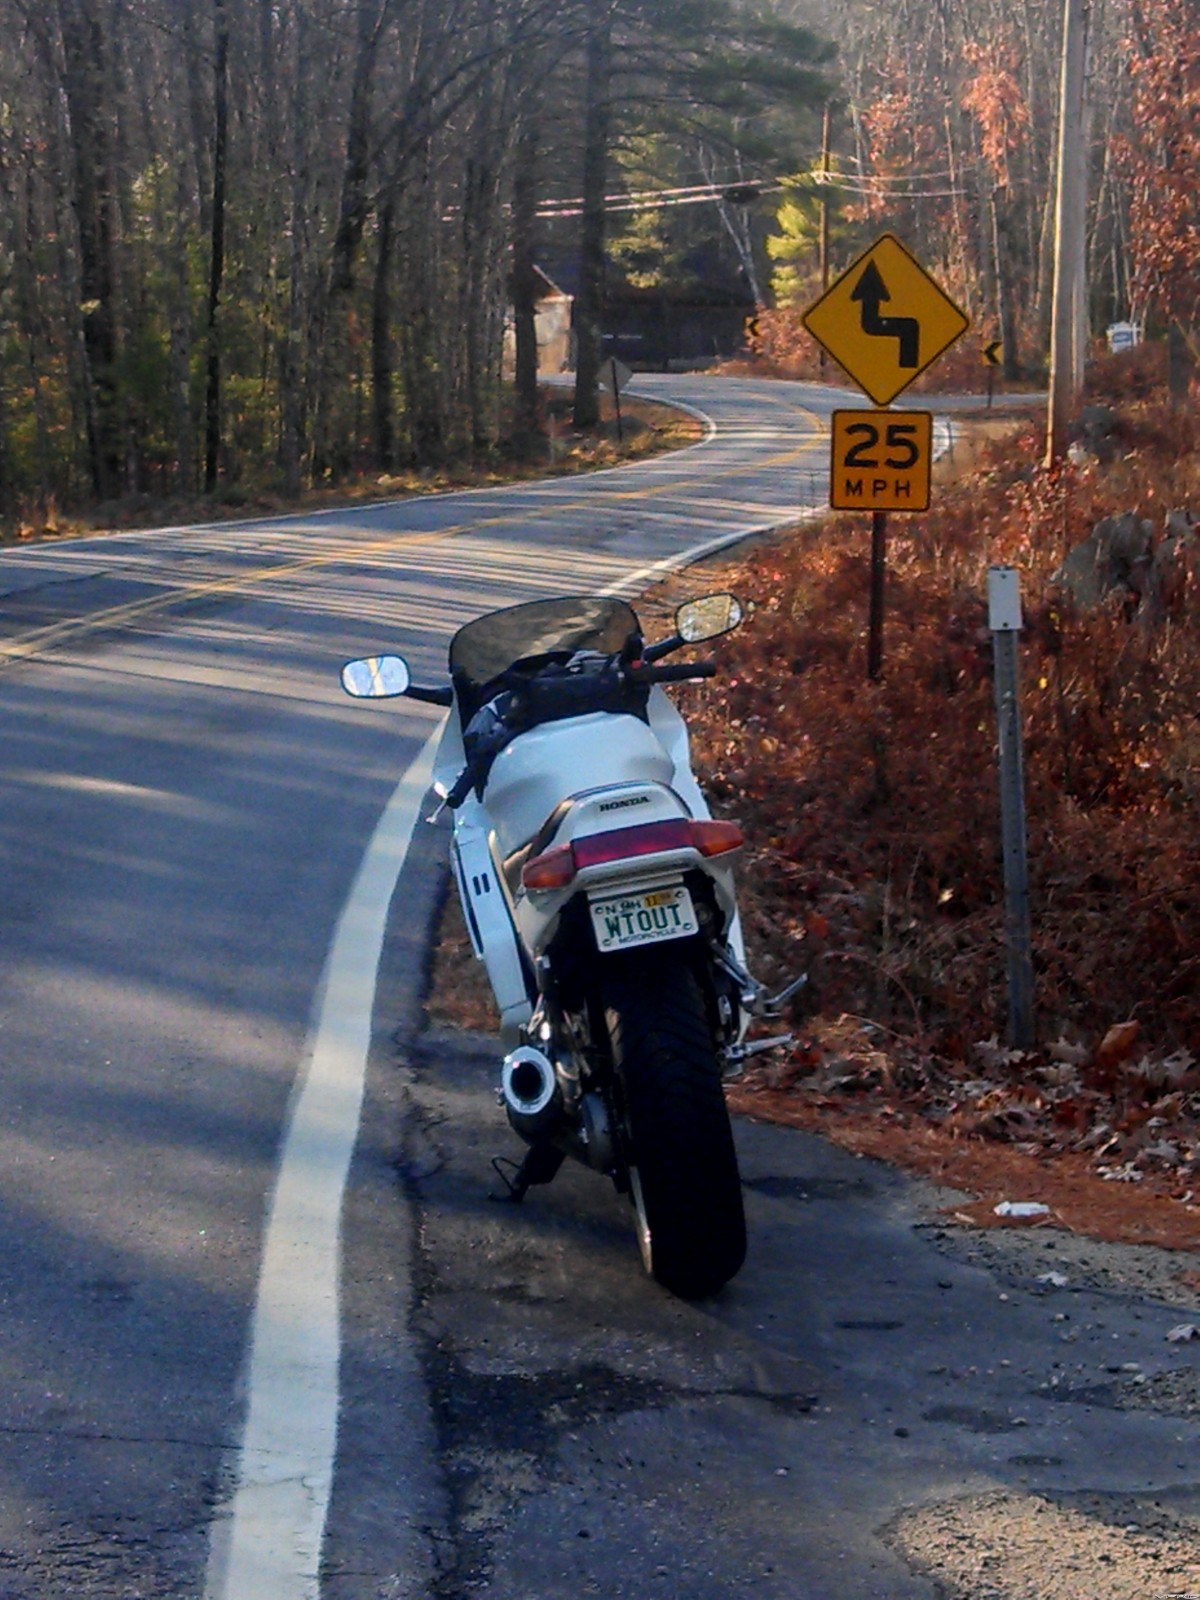 Two wheeled vehicles, double the speed limit